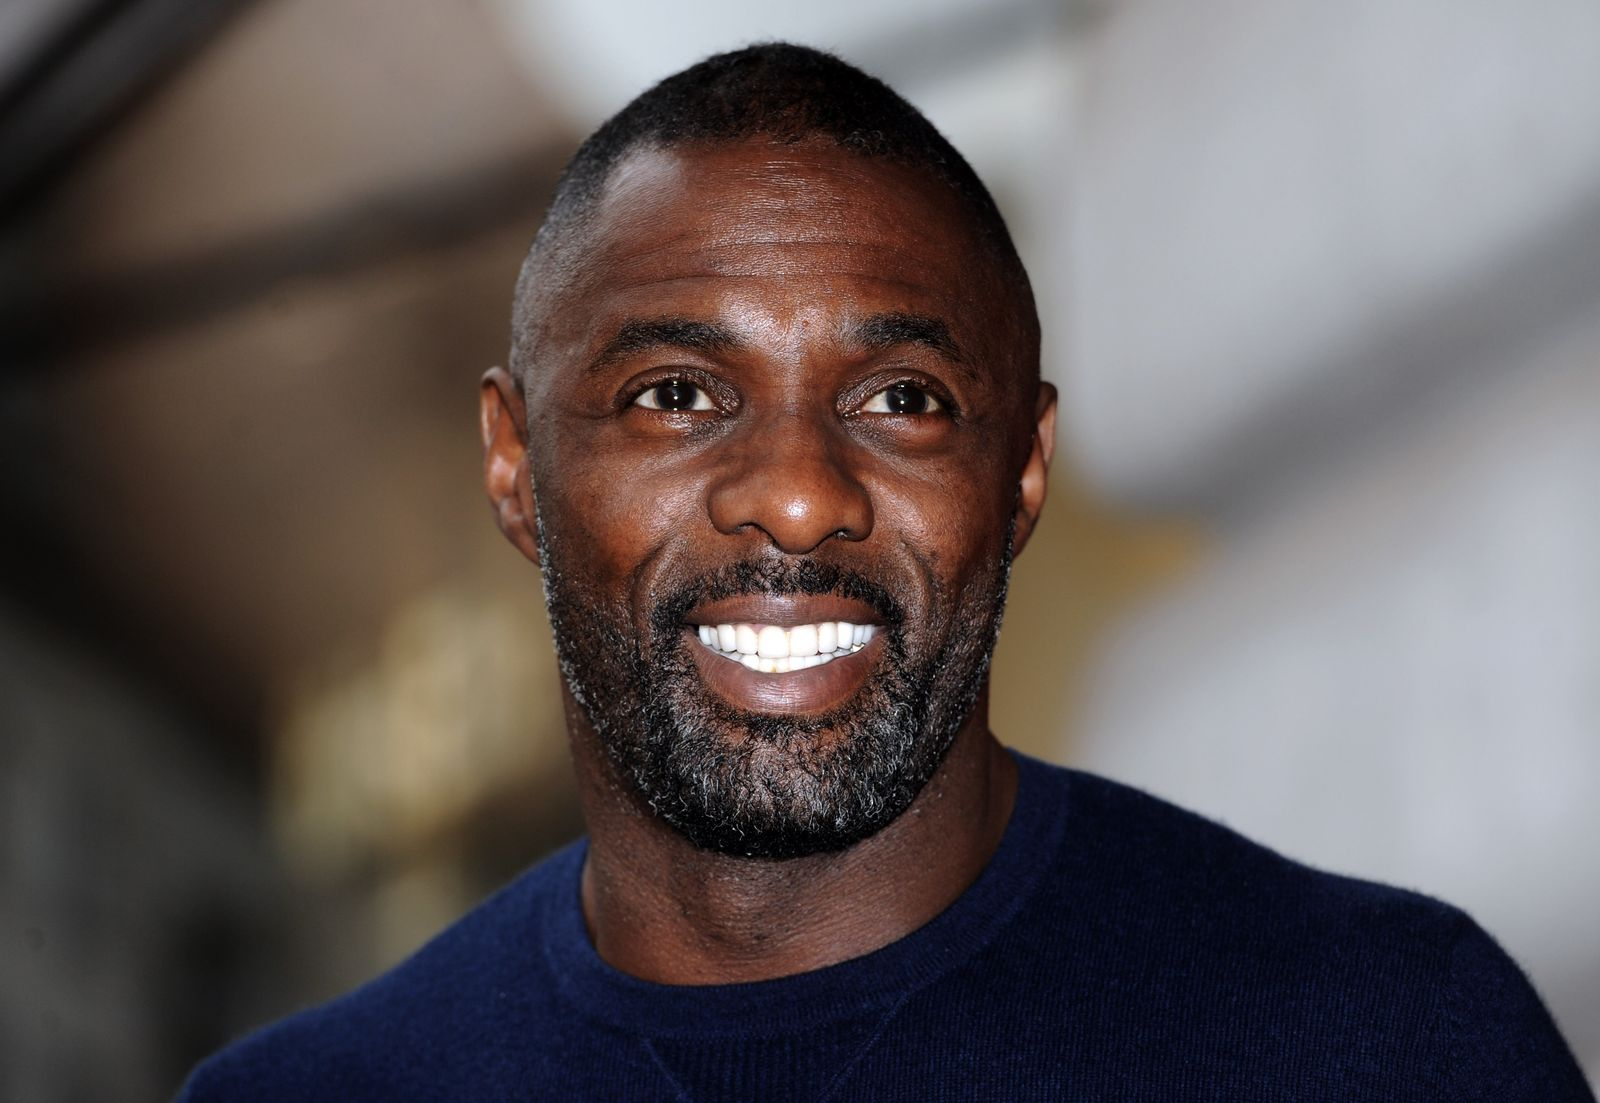 Idris Elba attends a photocall to launch the Superdry AW15 Premium Menswear collection at Superdry International Showroom on November 26, 2015    Photo: Getty Images